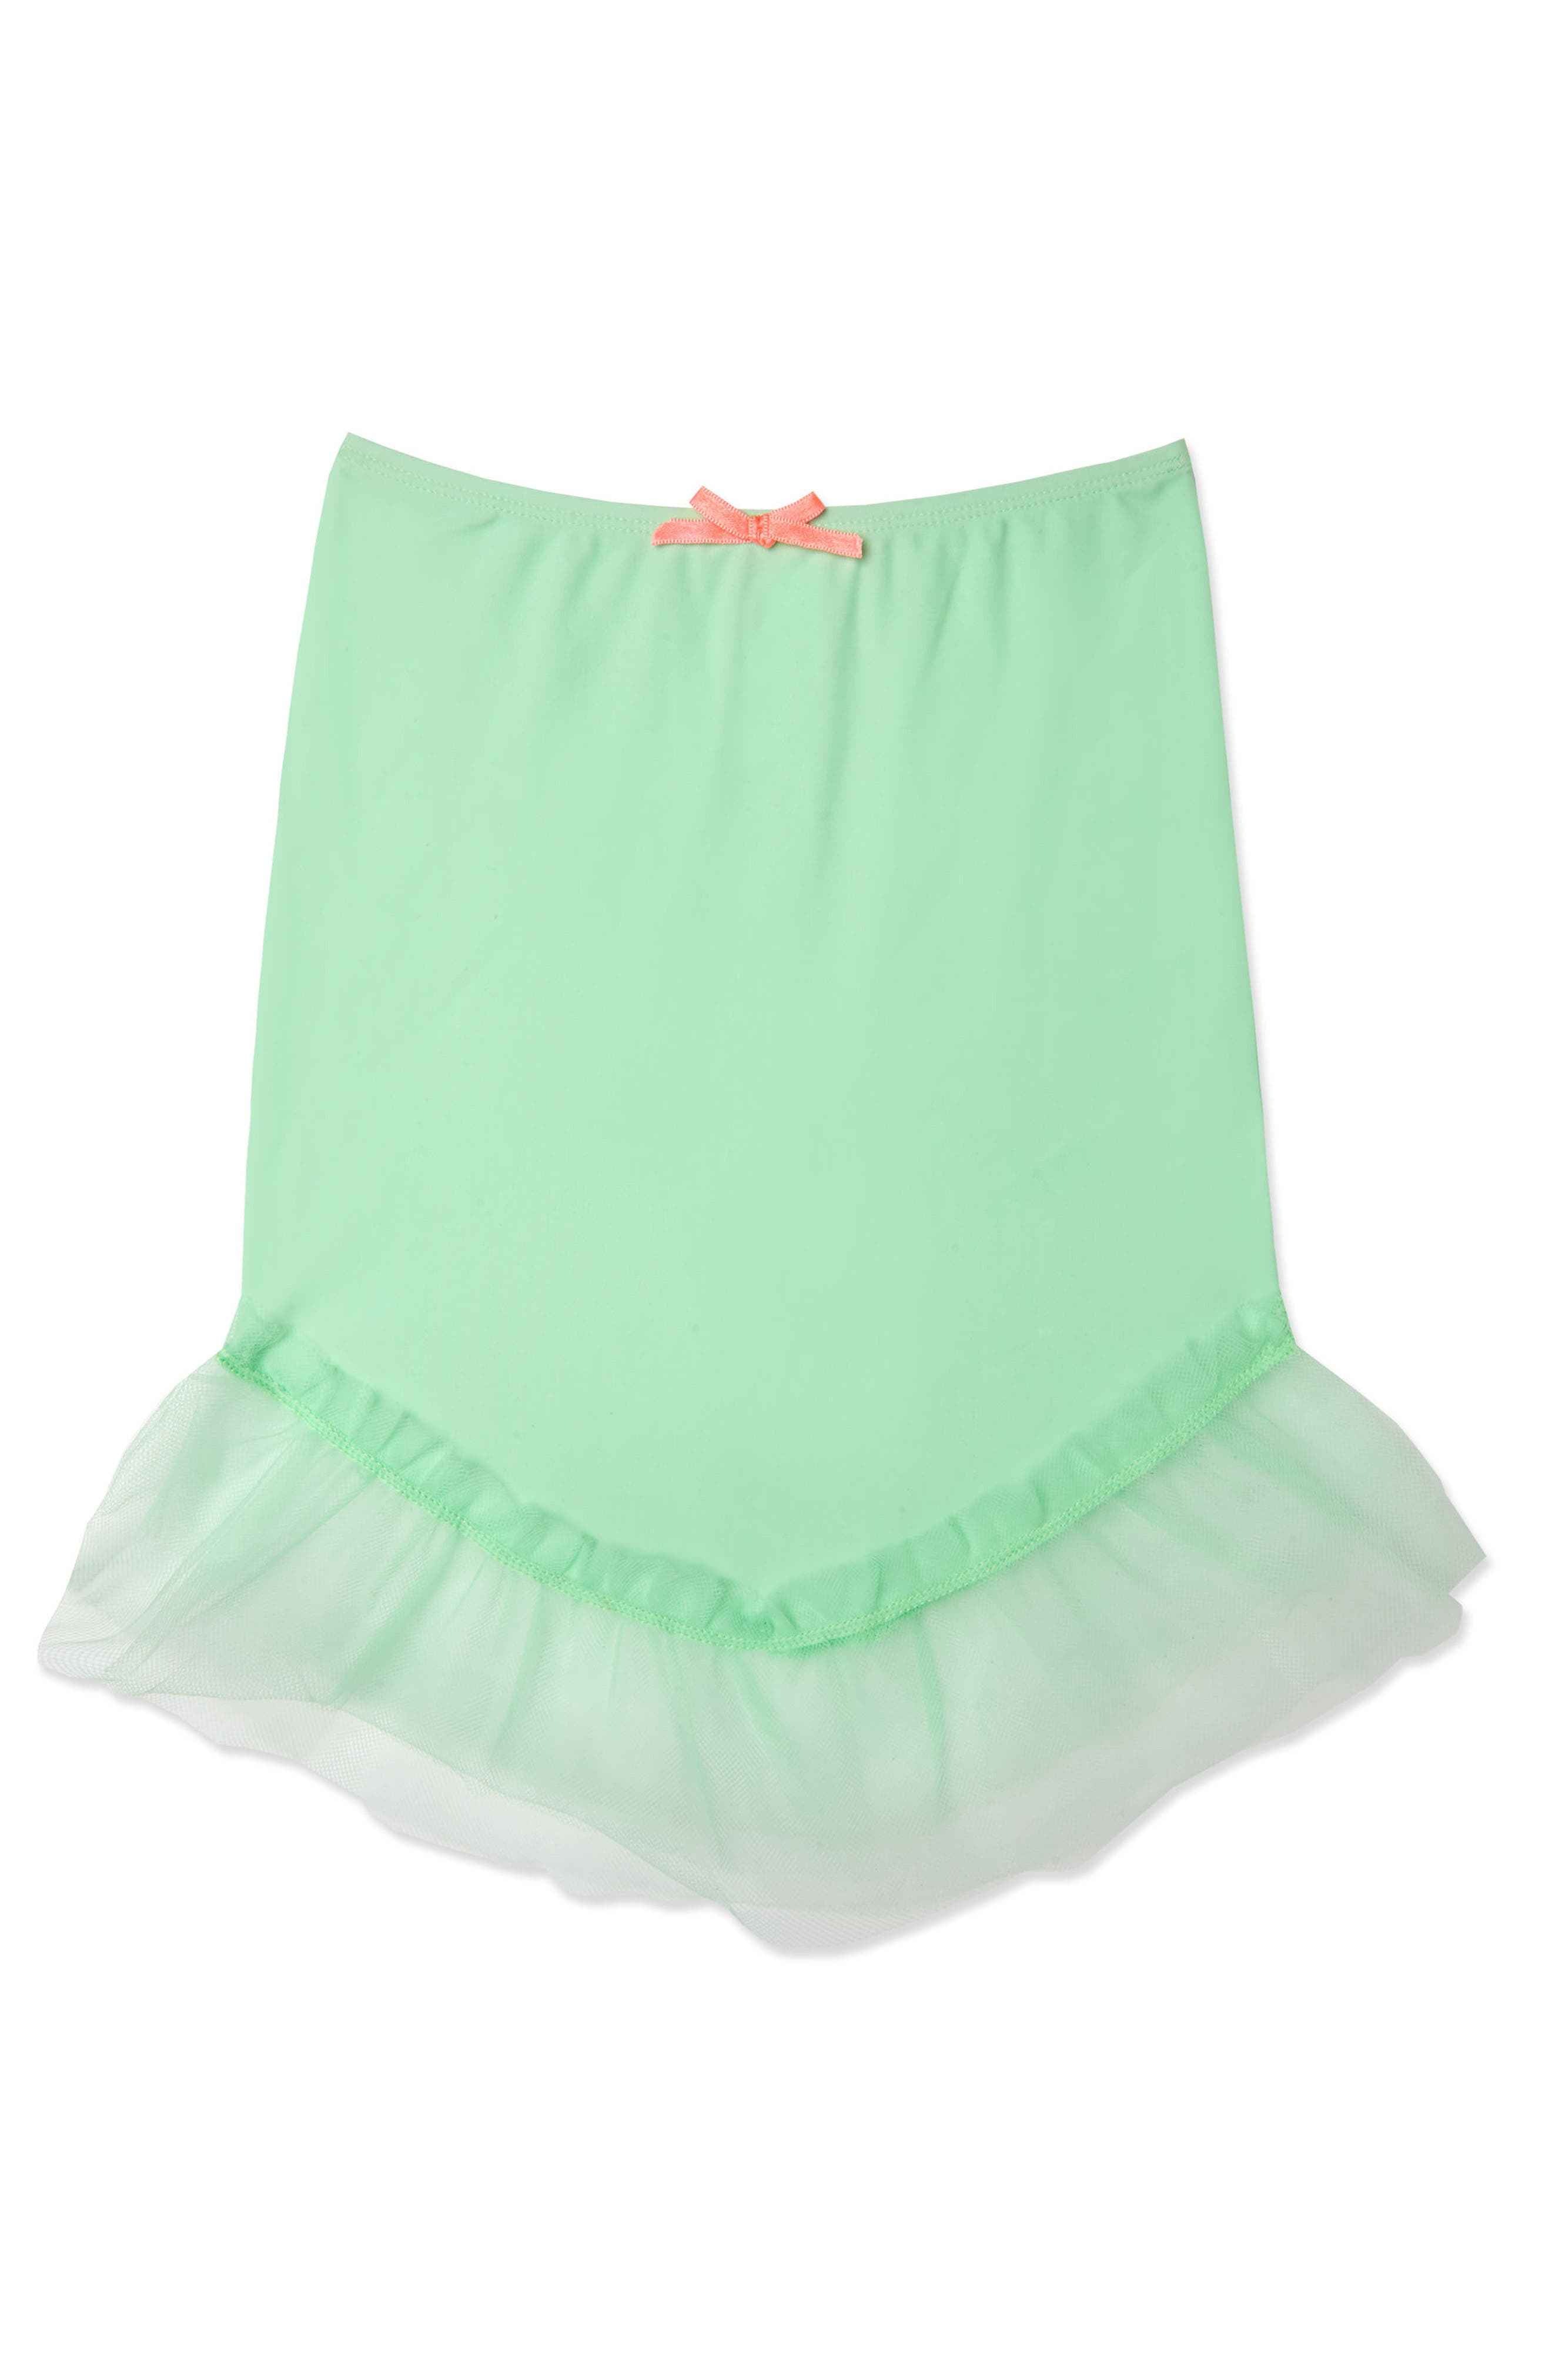 Mermaid Cover-Up Skirt,                         Main,                         color, Green